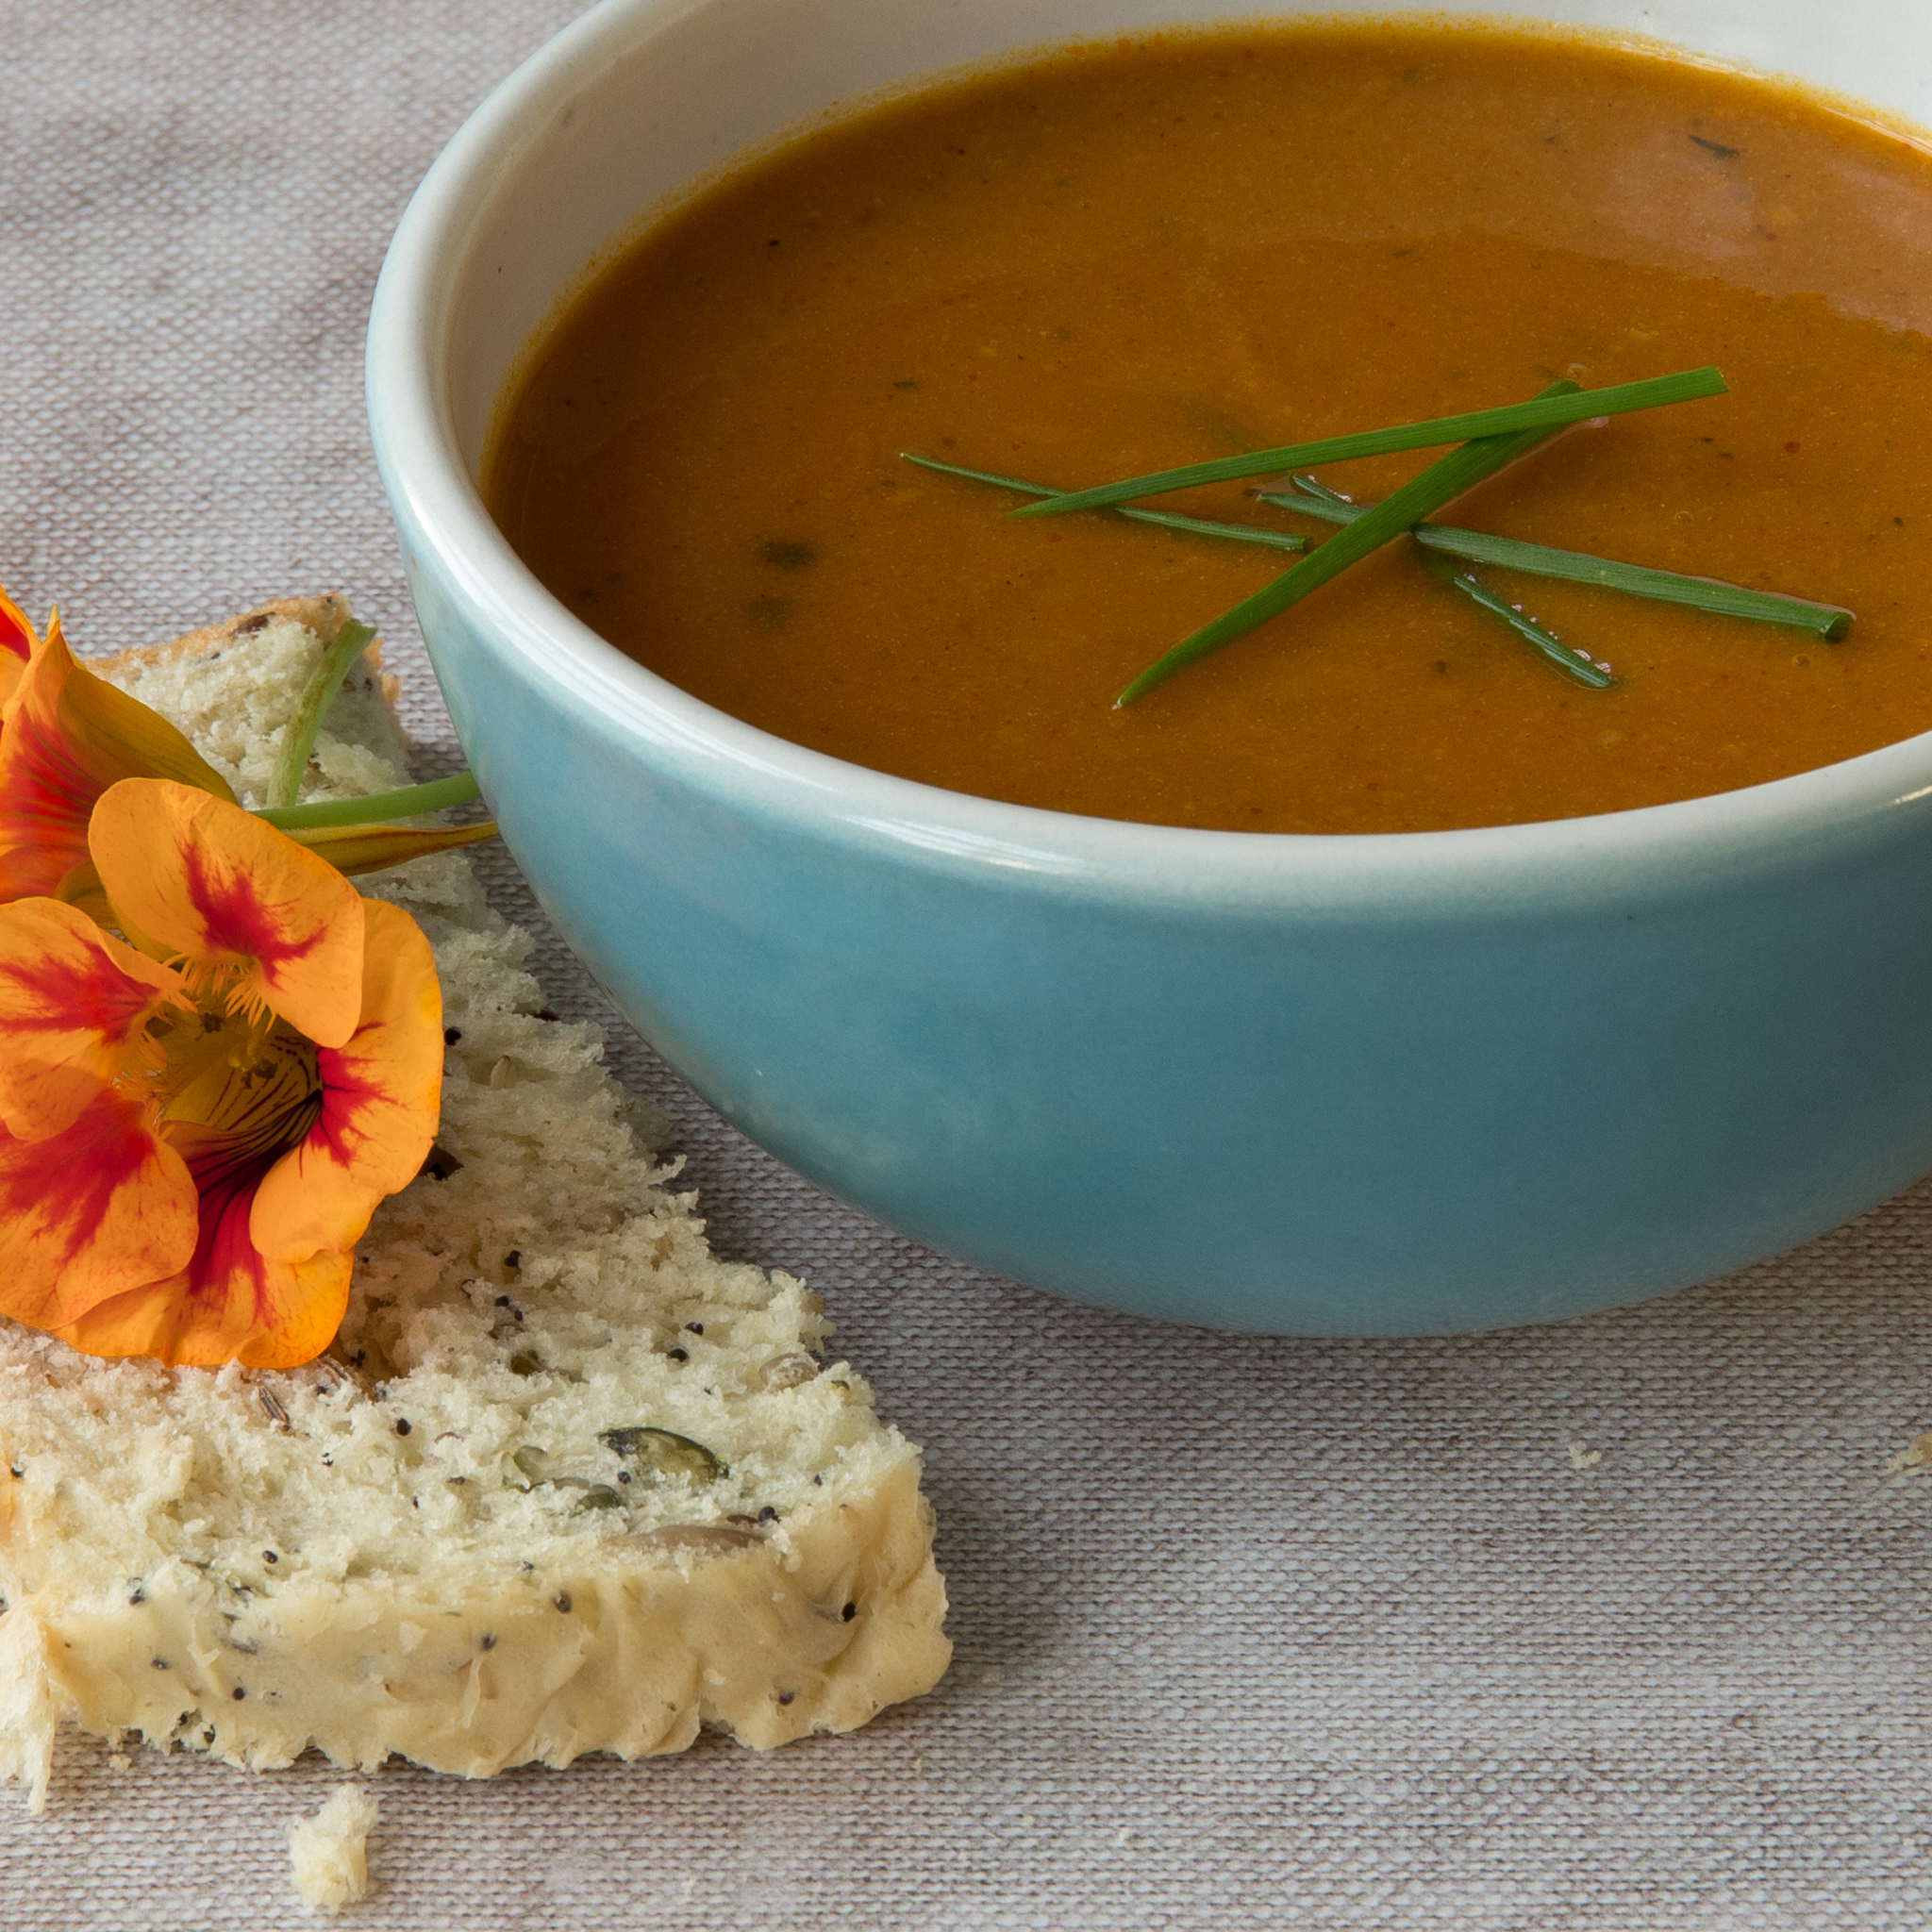 Home made soup and seeded bread